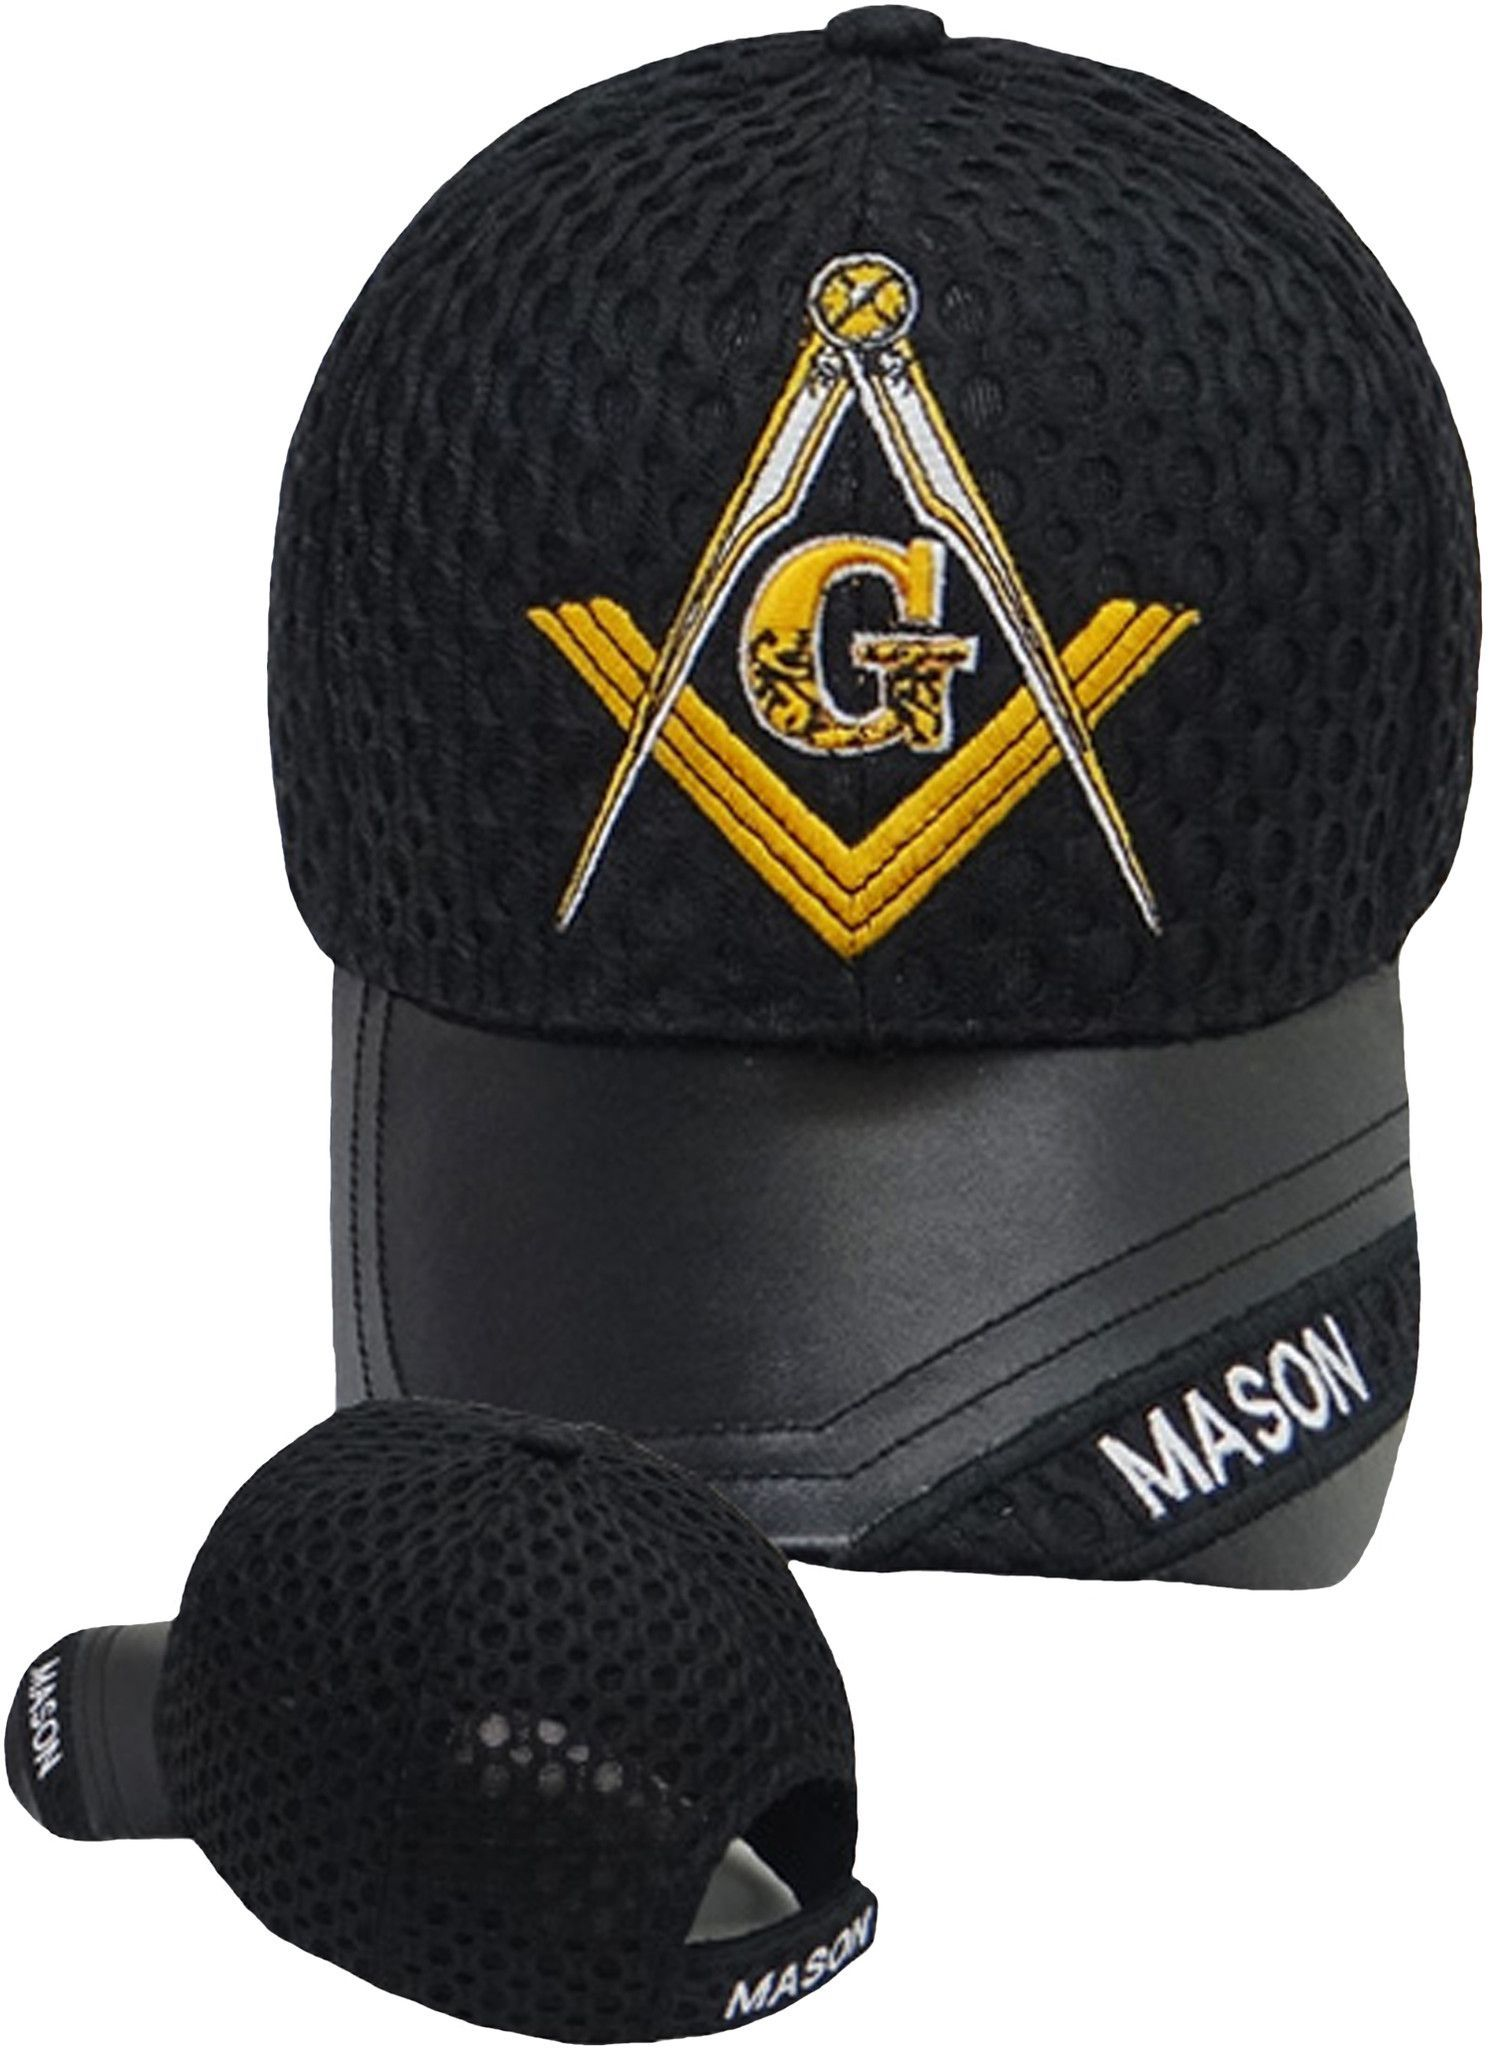 925088f0 Mason Hat Black Baseball Cap with Masonic Logo Freemasons Shriners Prince  Hall Lodge Leather Headwear